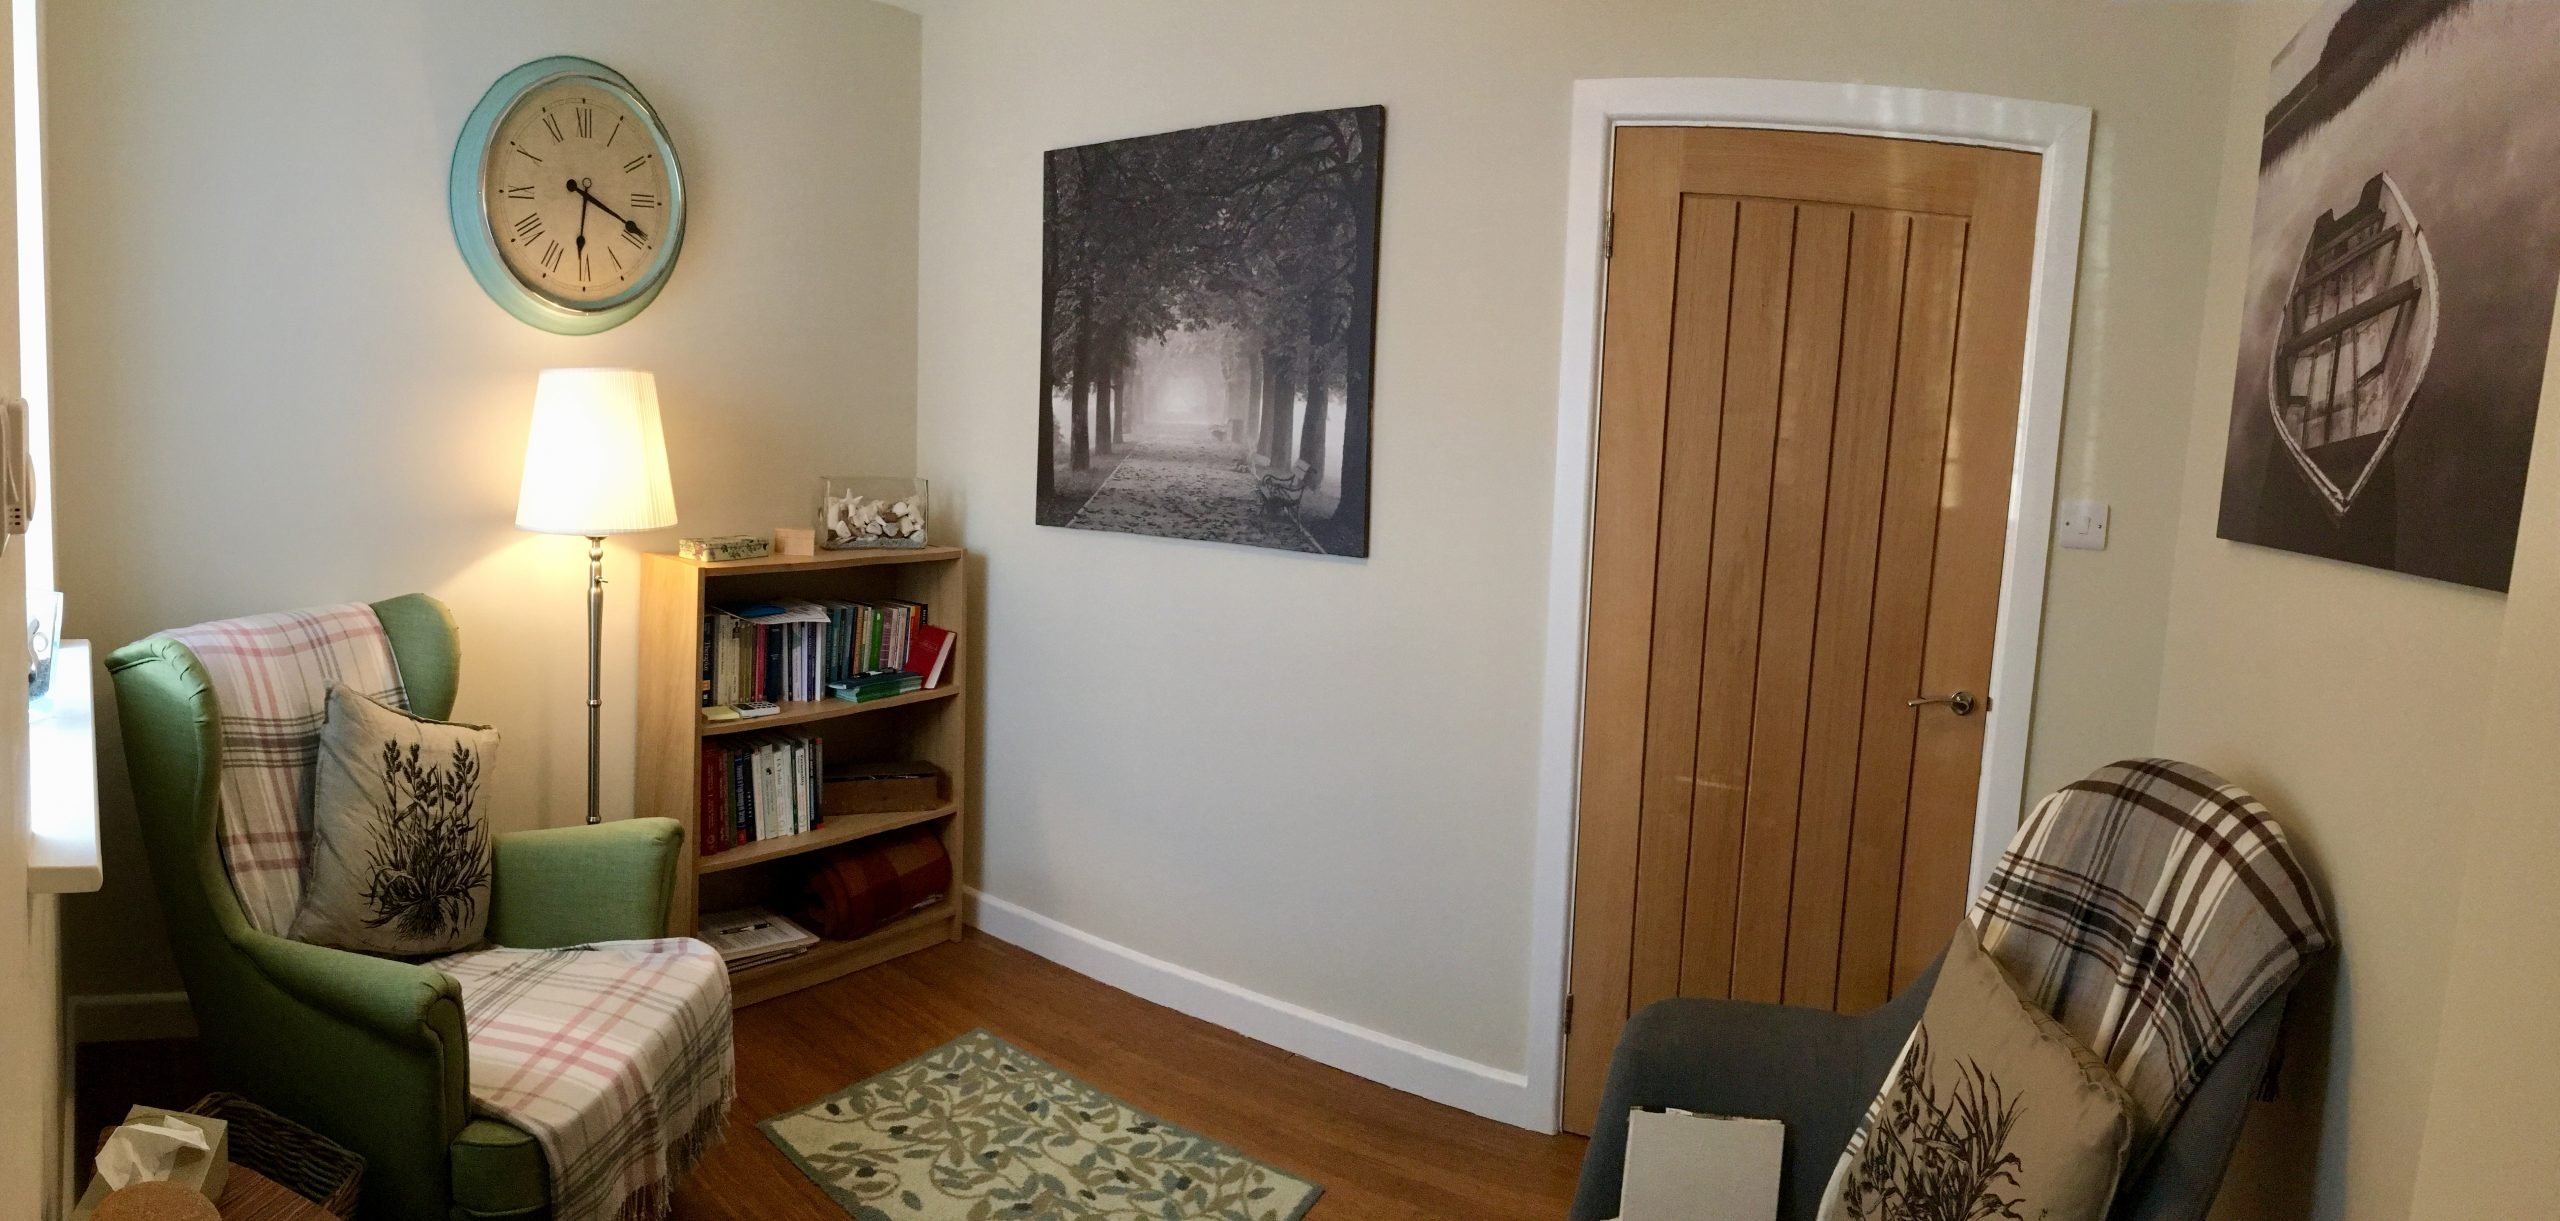 private and confidential dedicated room for online therapy